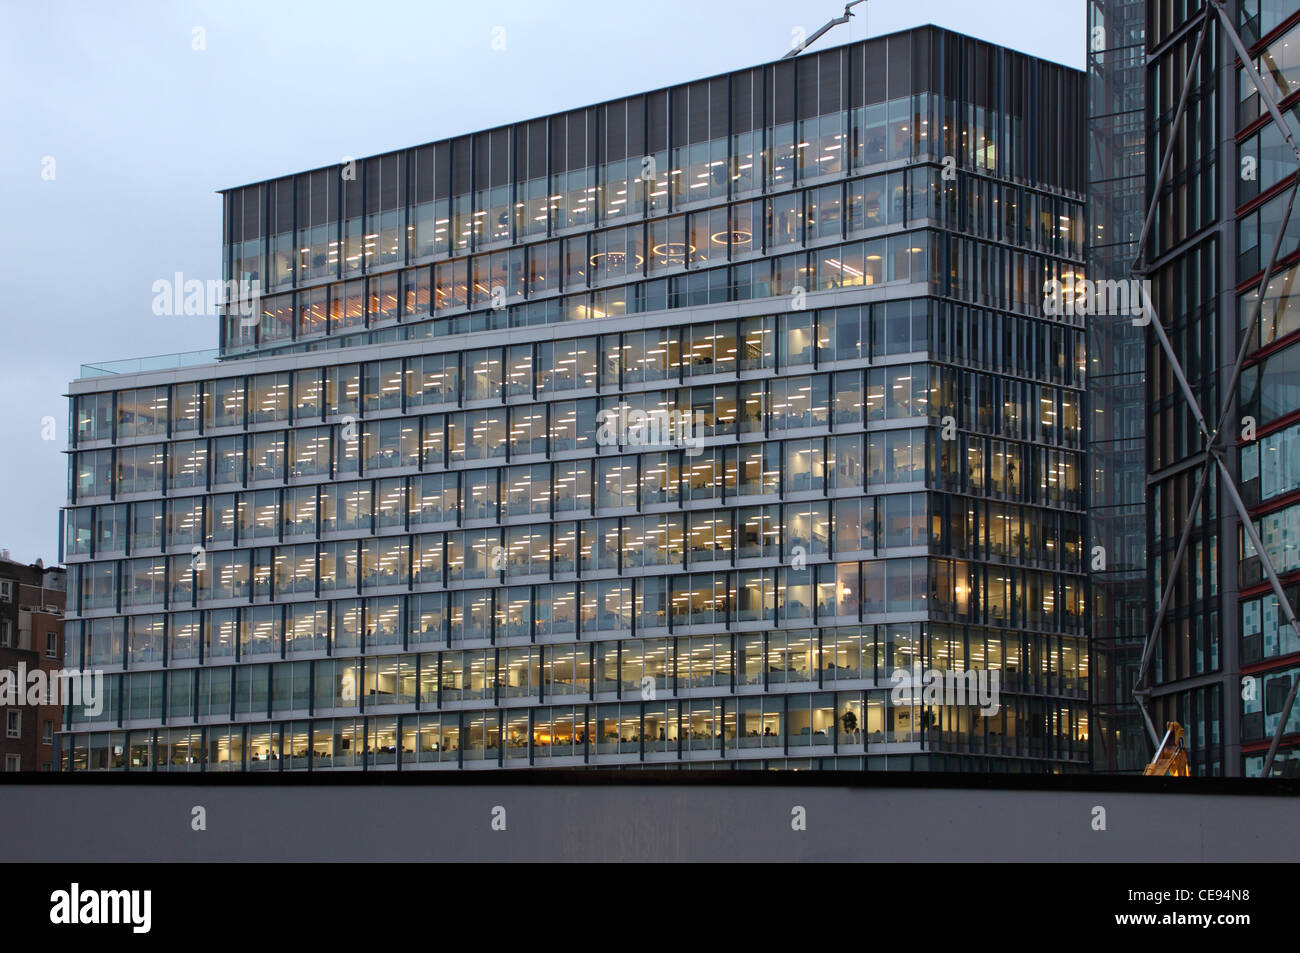 Disappearing Glass Office Buildings In The Morning Wide: Lit Up Office Building With Large Glass Windows In The